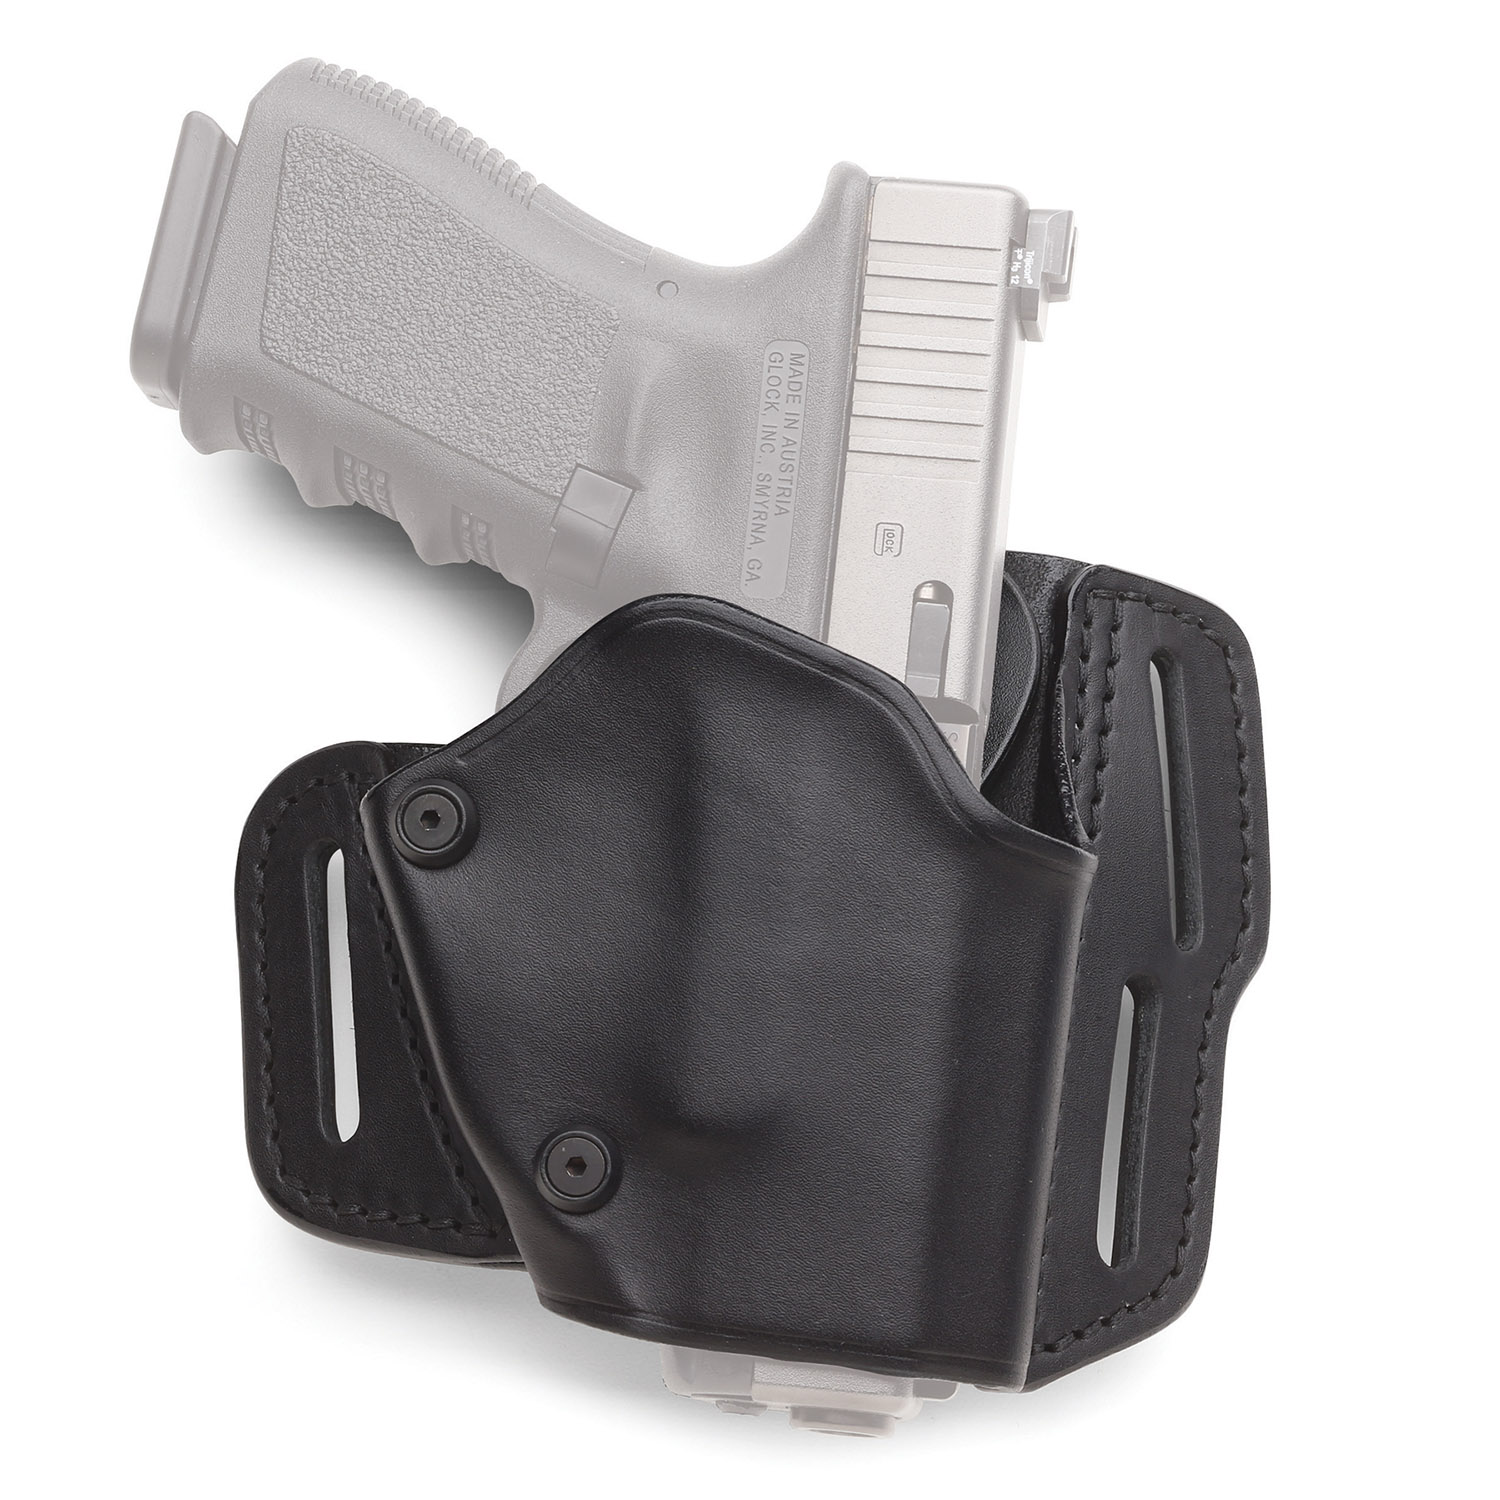 BLACKHAWK! Grip Break Leather Holster